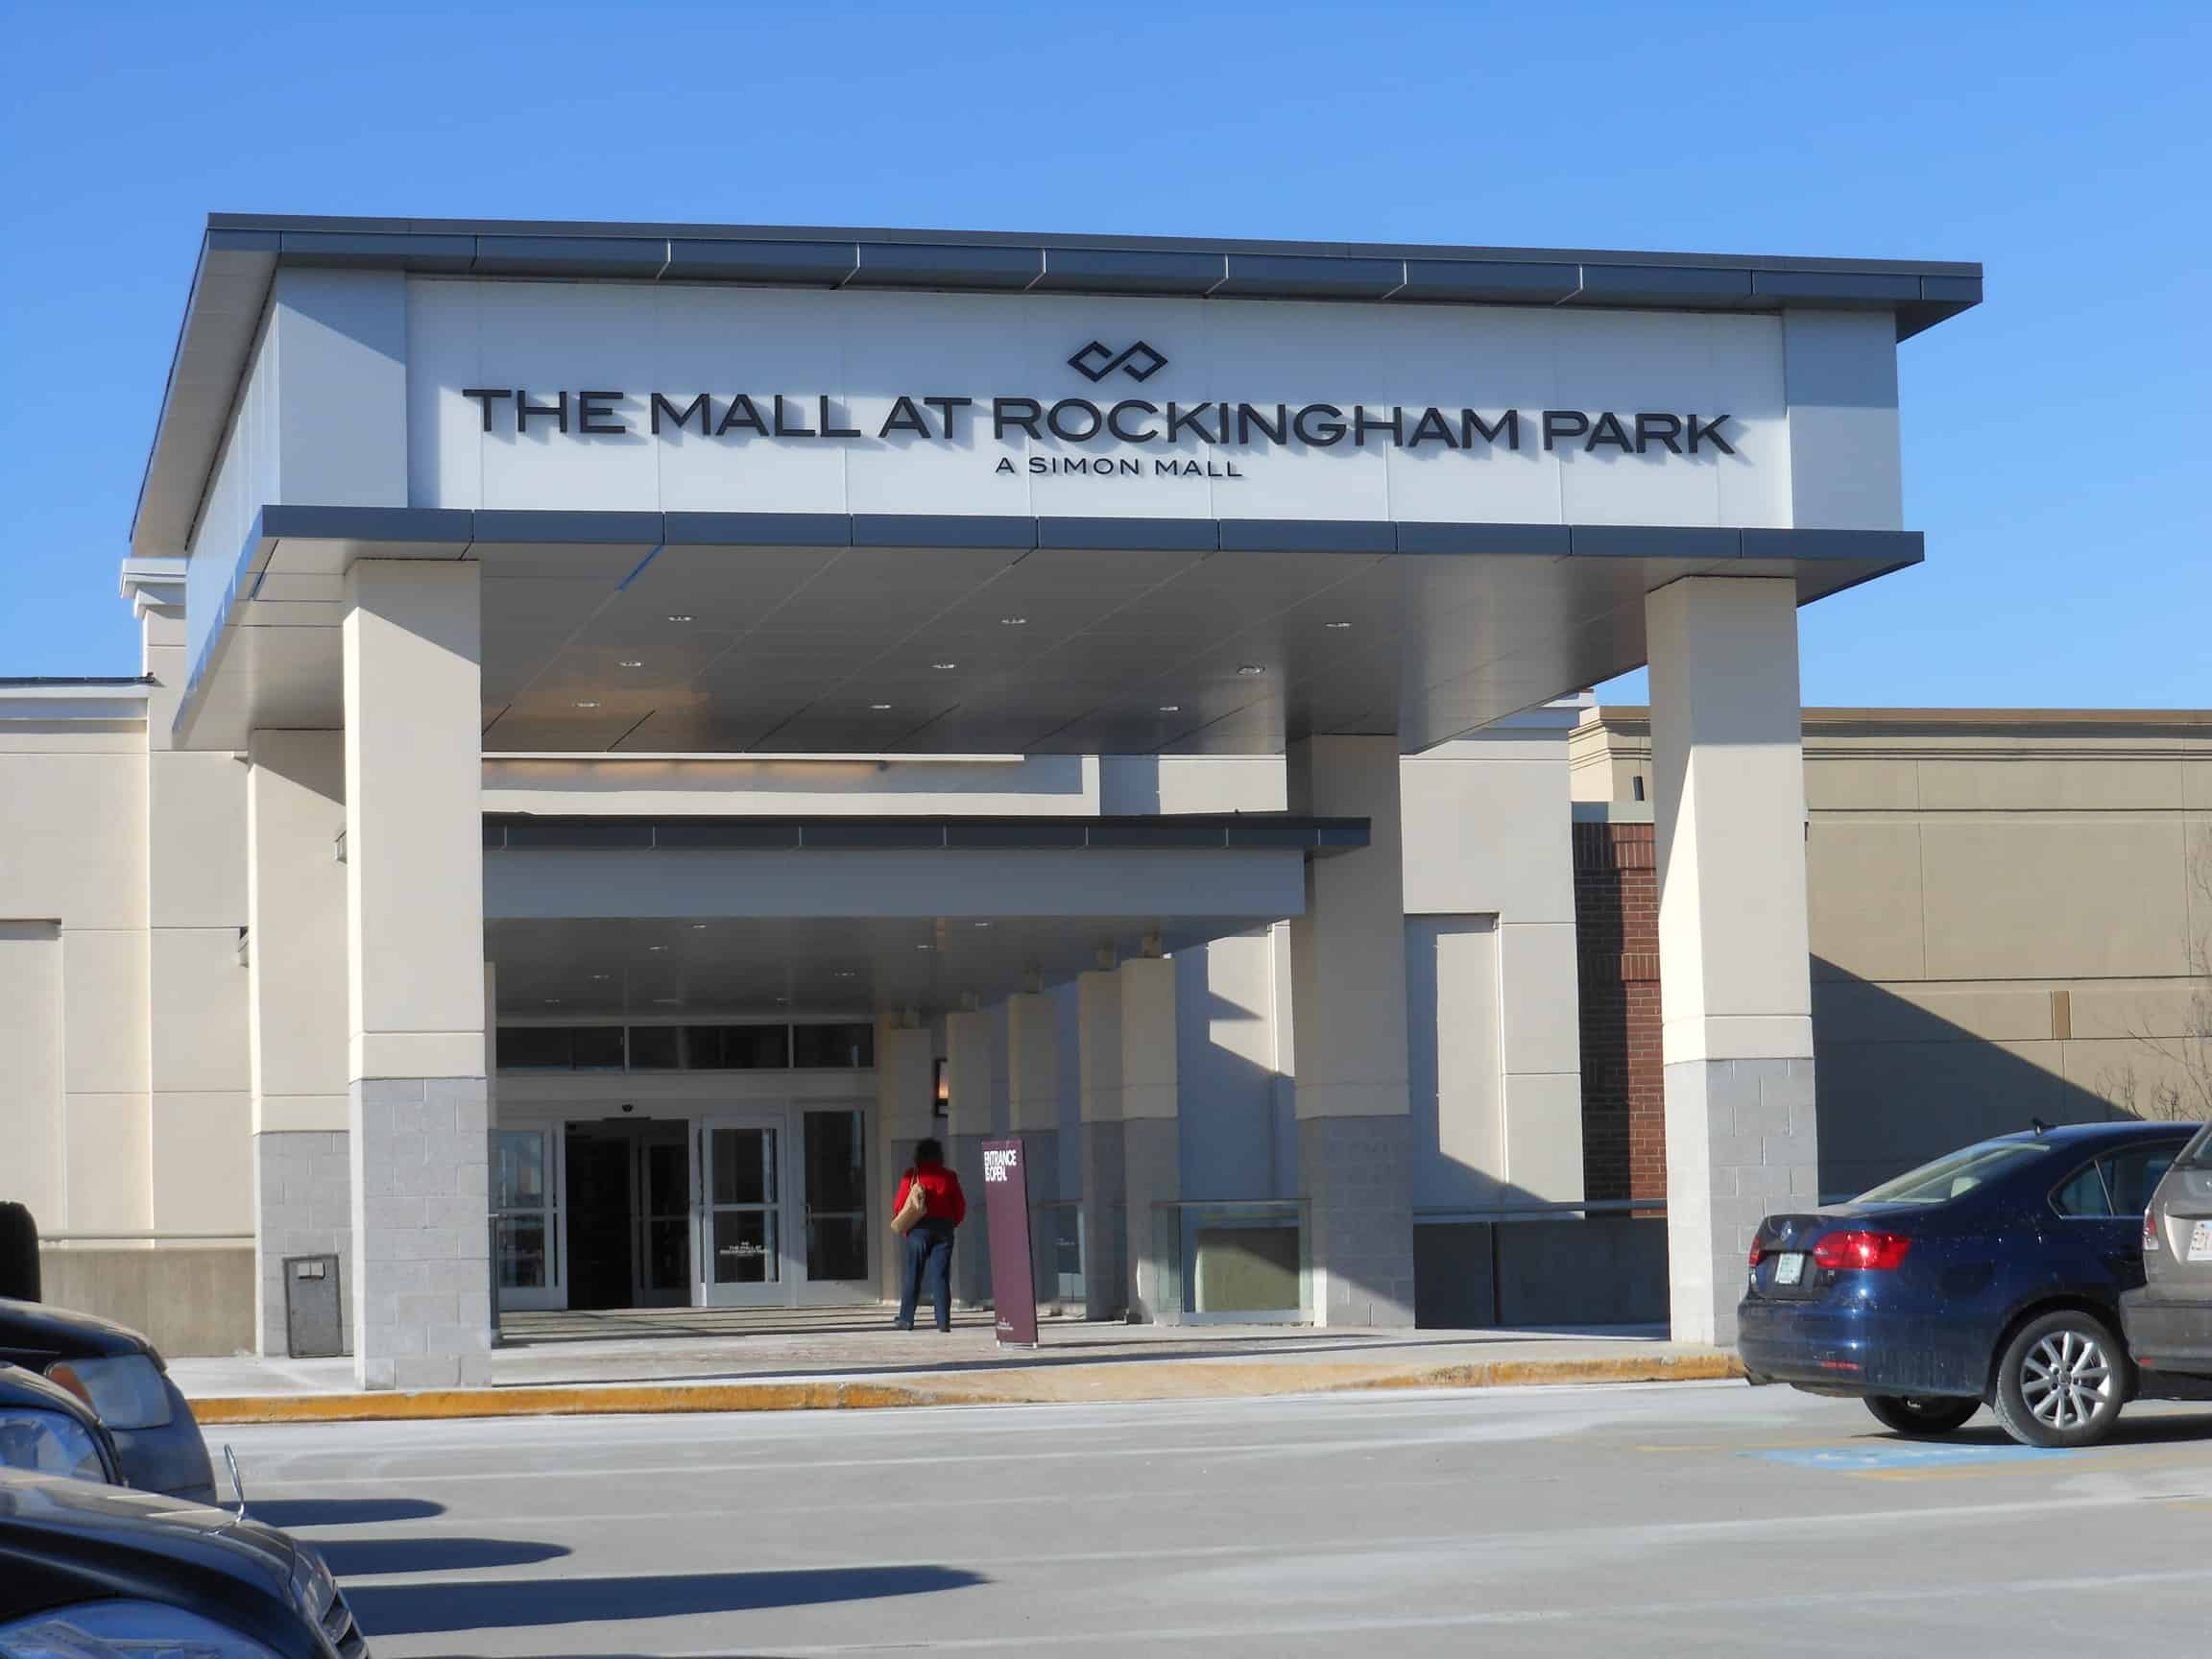 The Mall at Rockingham Park 4